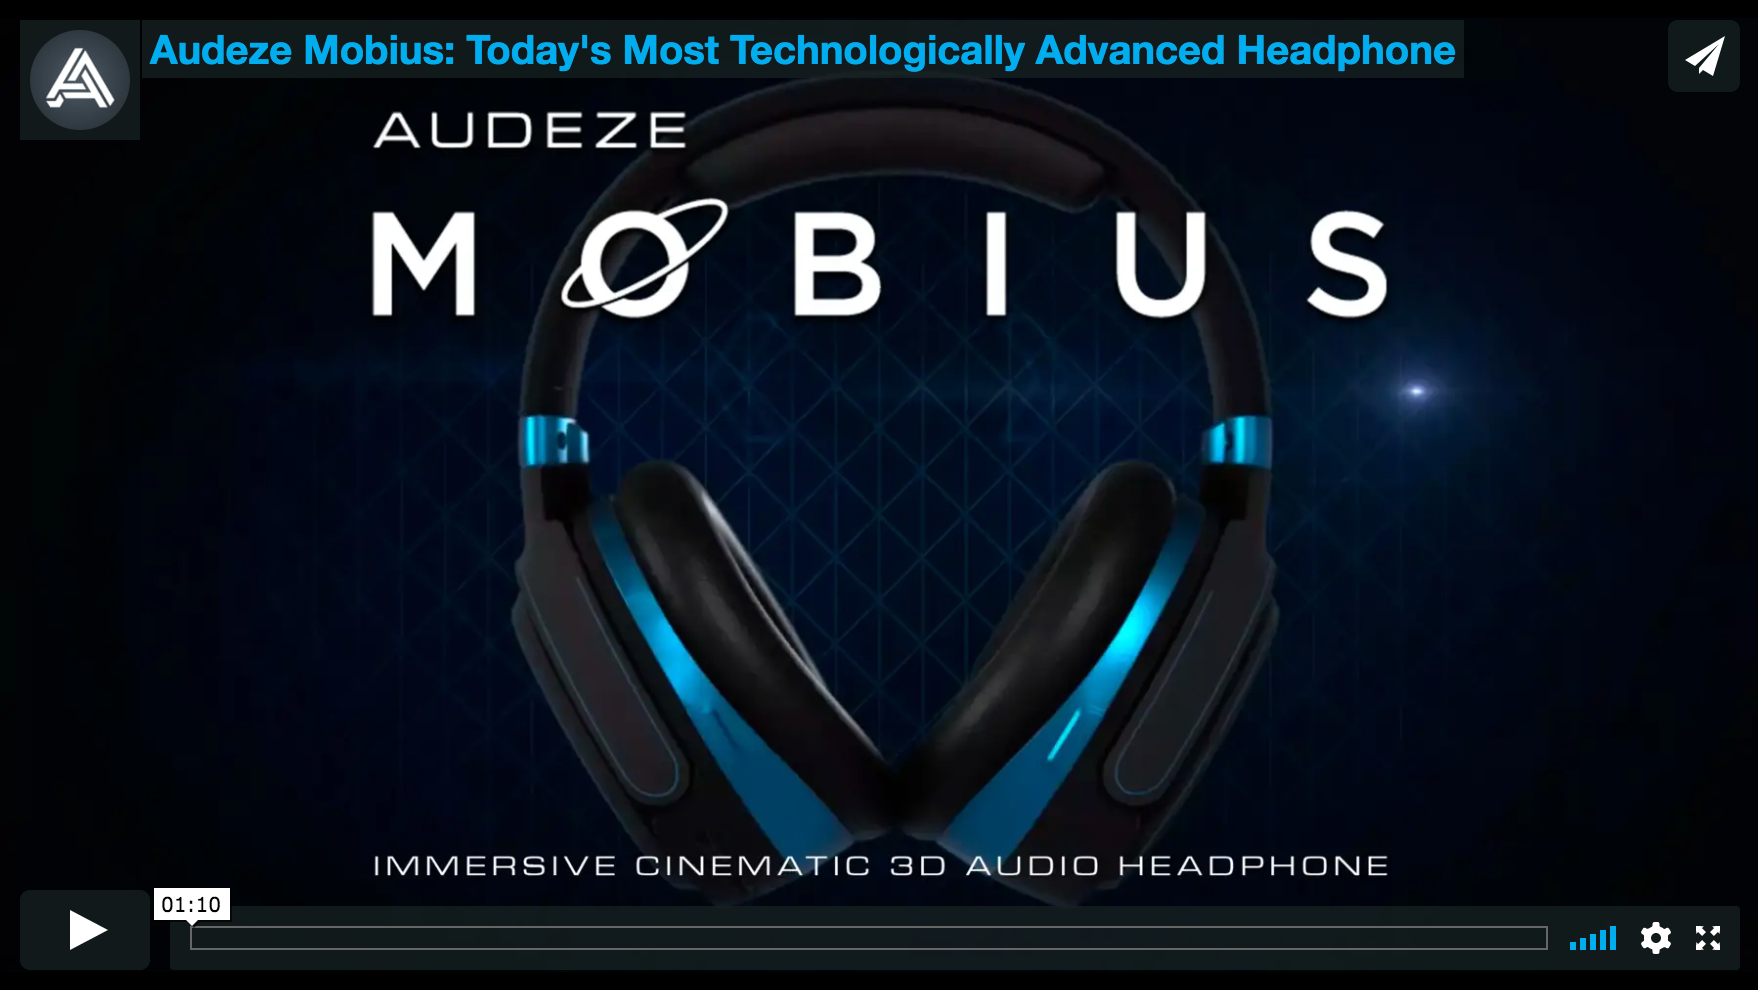 Audeze Mobius: Today's Most Technologically Advanced Headphone